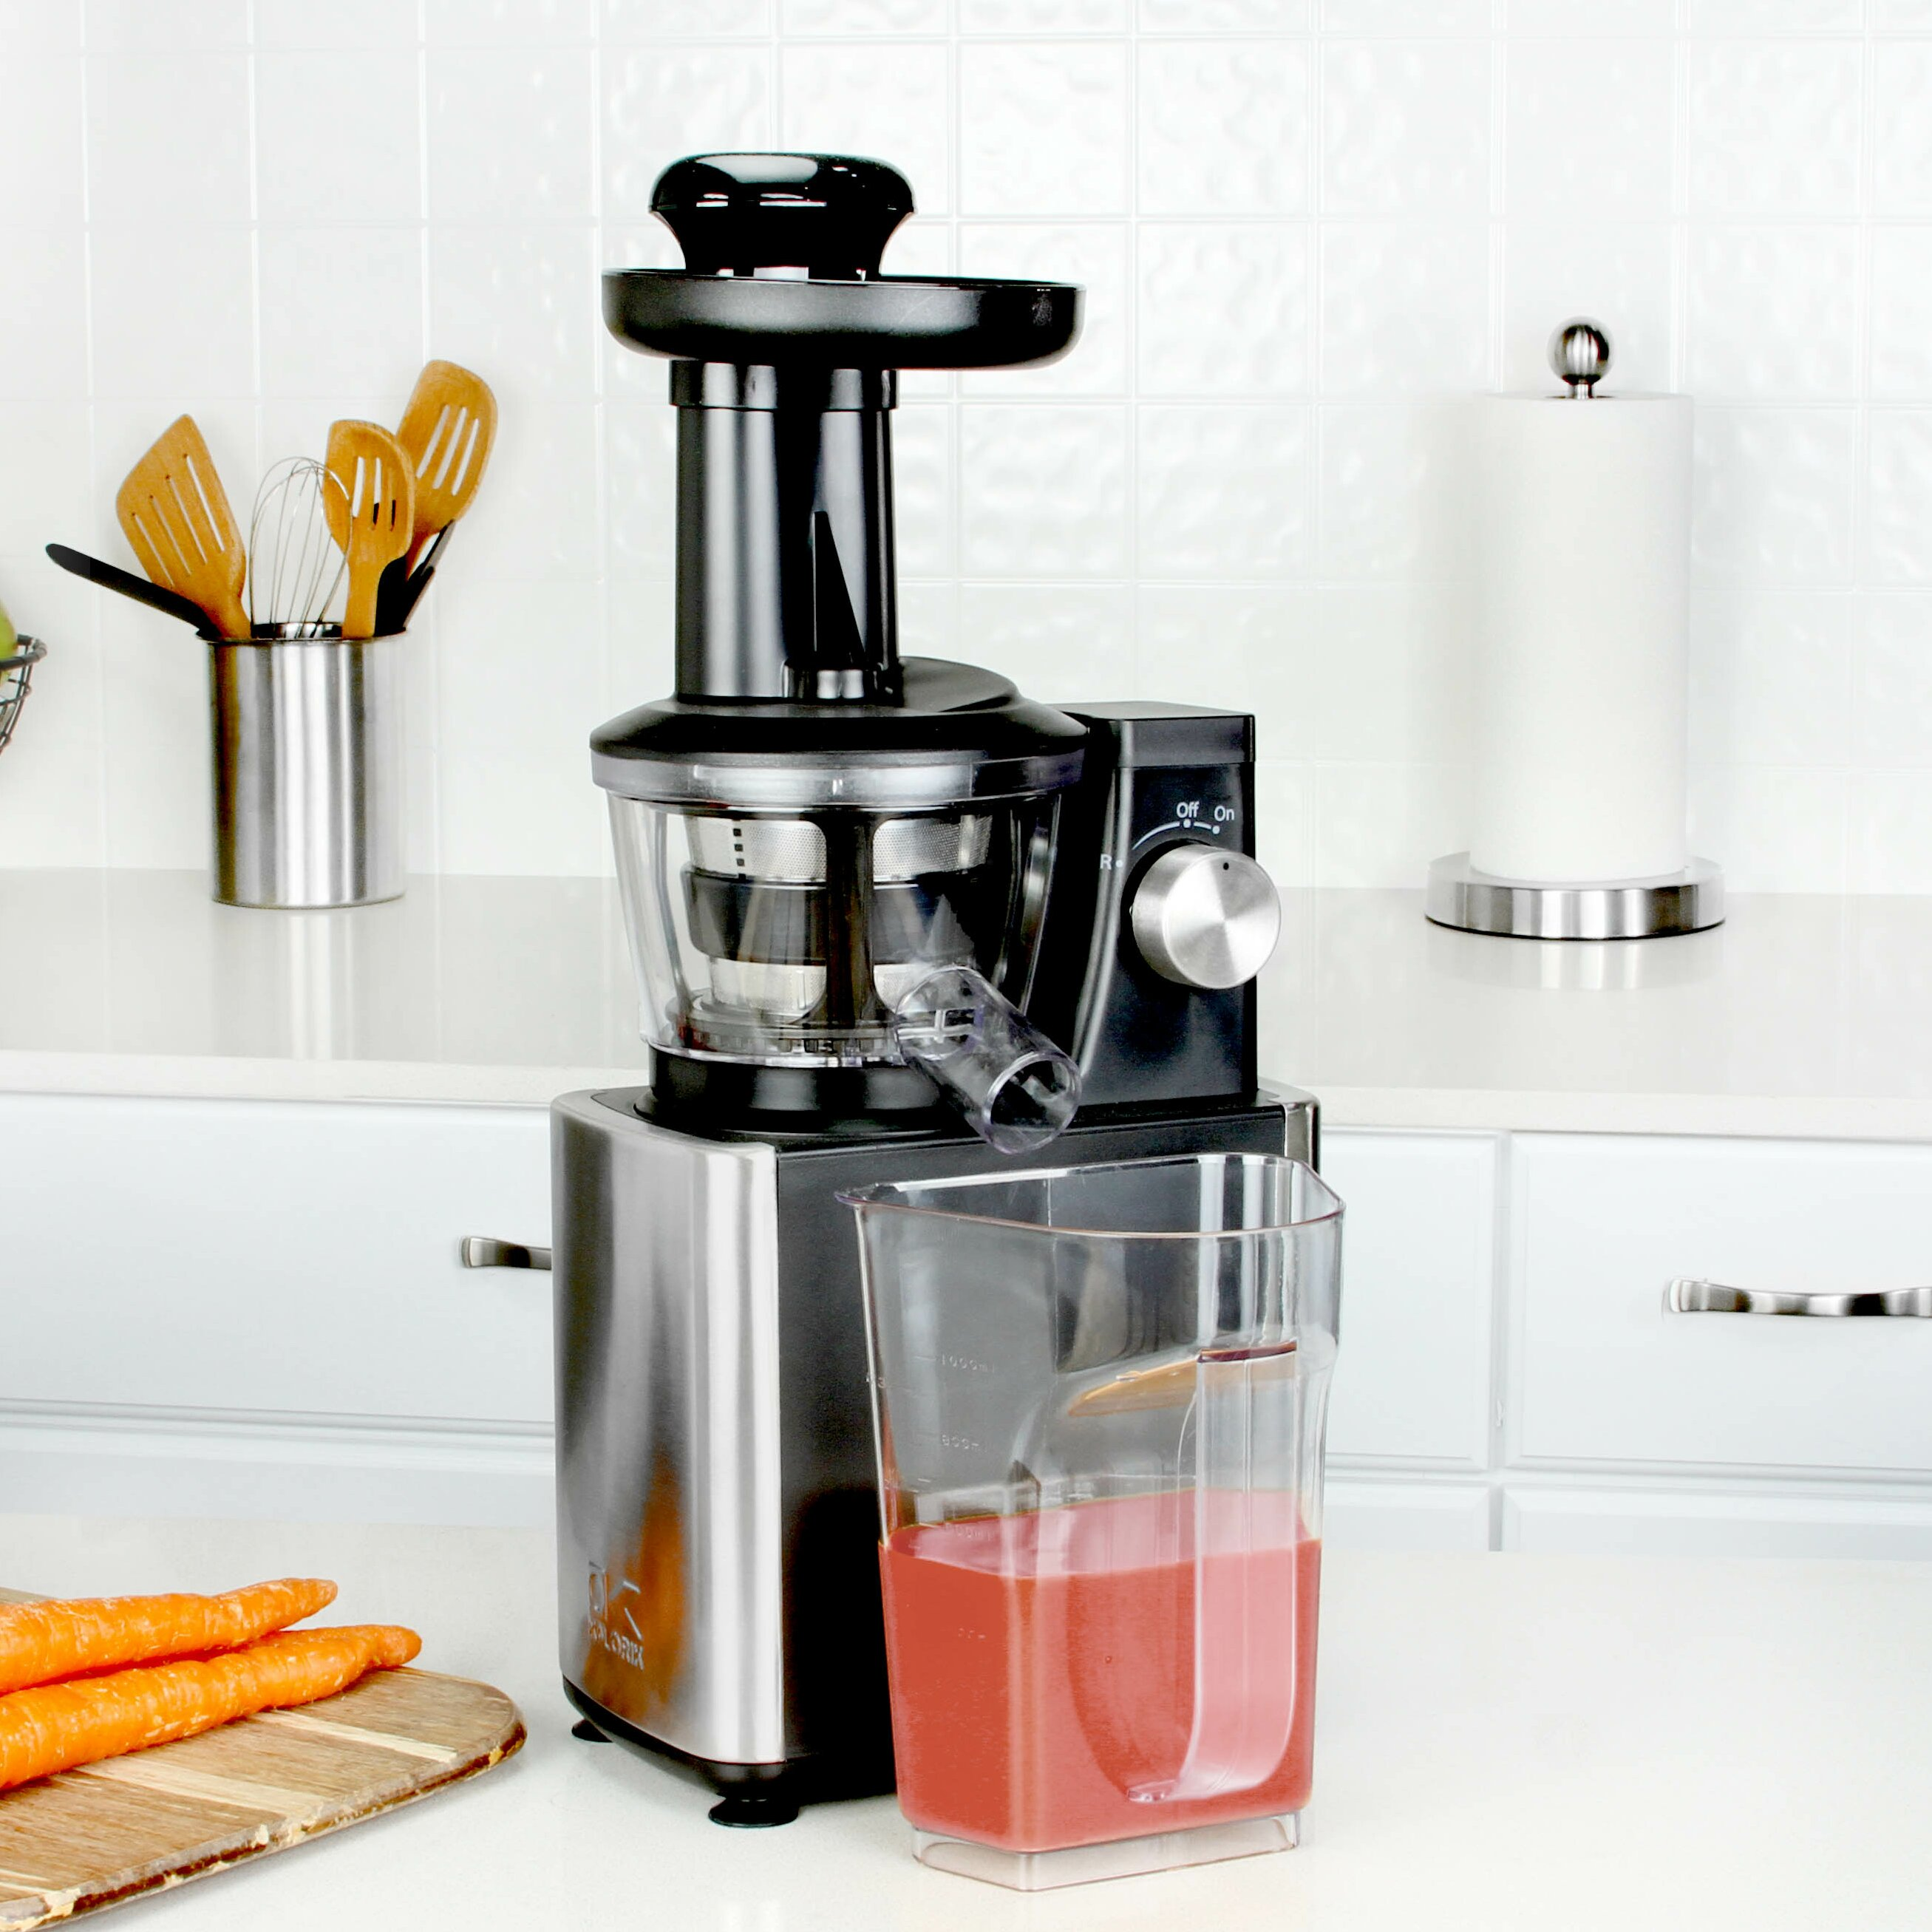 Kalorik Slow Juicer Reviews : Kalorik Slow Juicer & Reviews Wayfair